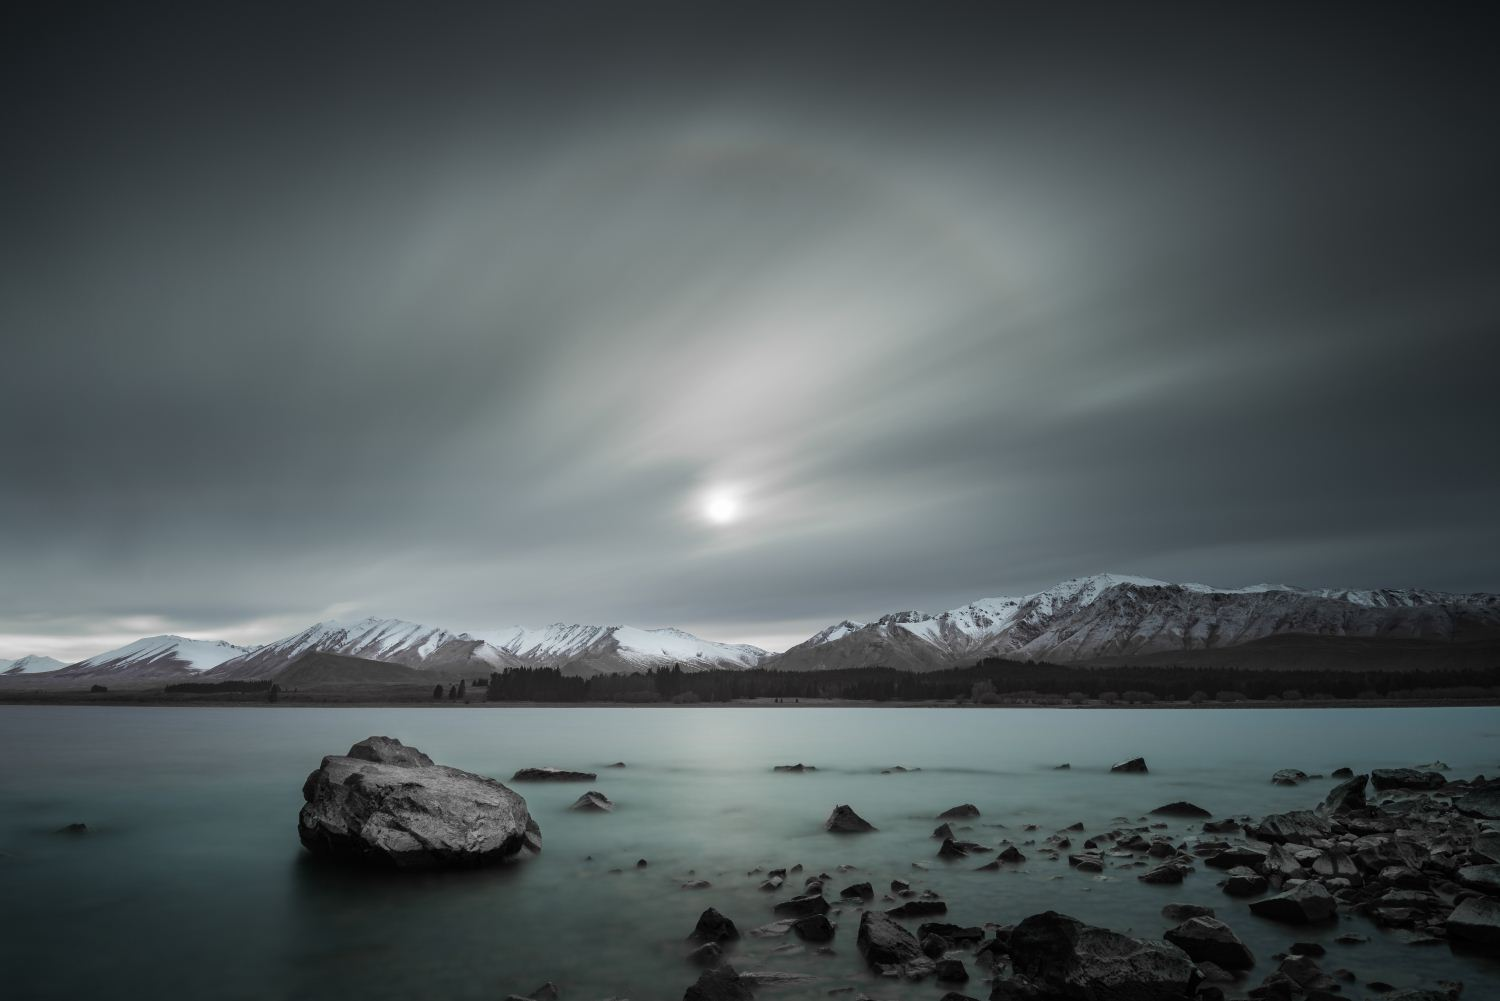 Sun Arc, Lake Tekapo, Lake Tekapo, Canterbury, South Island, New Zealand